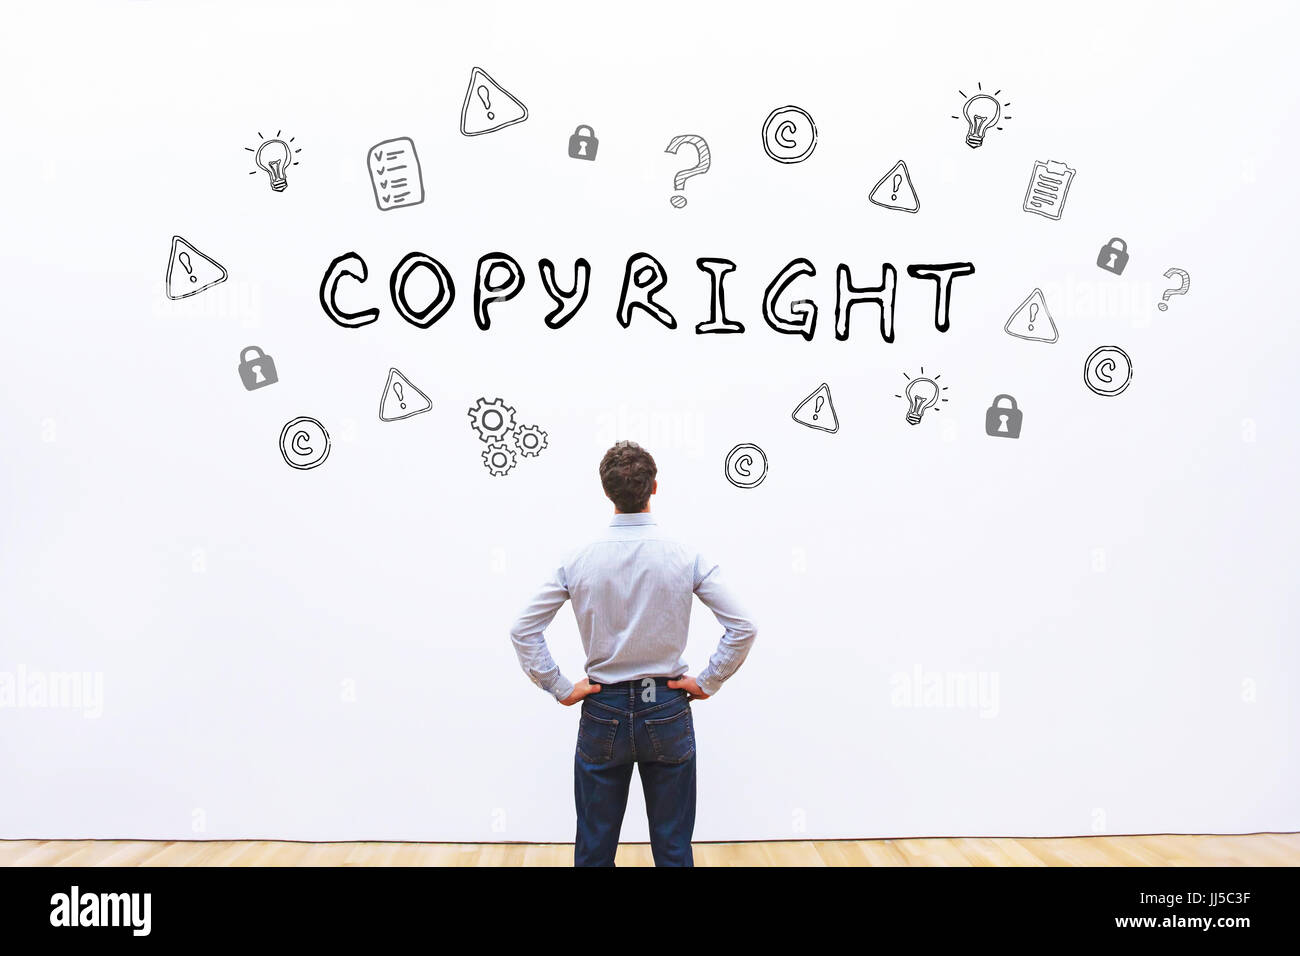 copyright concept - Stock Image